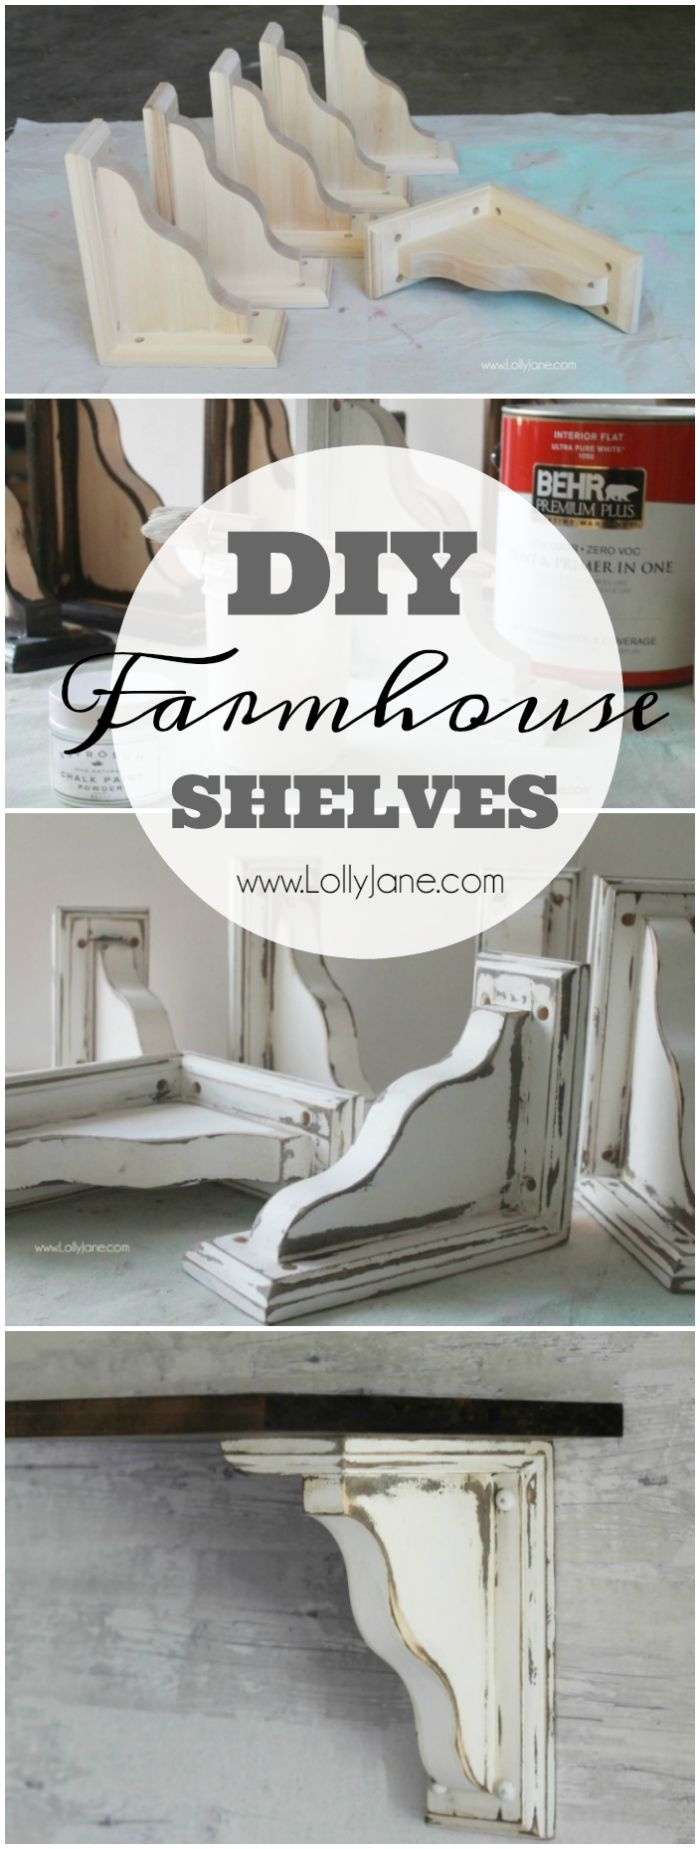 Pretty farmhouse dining room shelves, click through to see how easily the room came together. Step by step how to create this look! Pretty farmhouse dining room decor ideas! DIY farmhouse shelves using stain + paint!